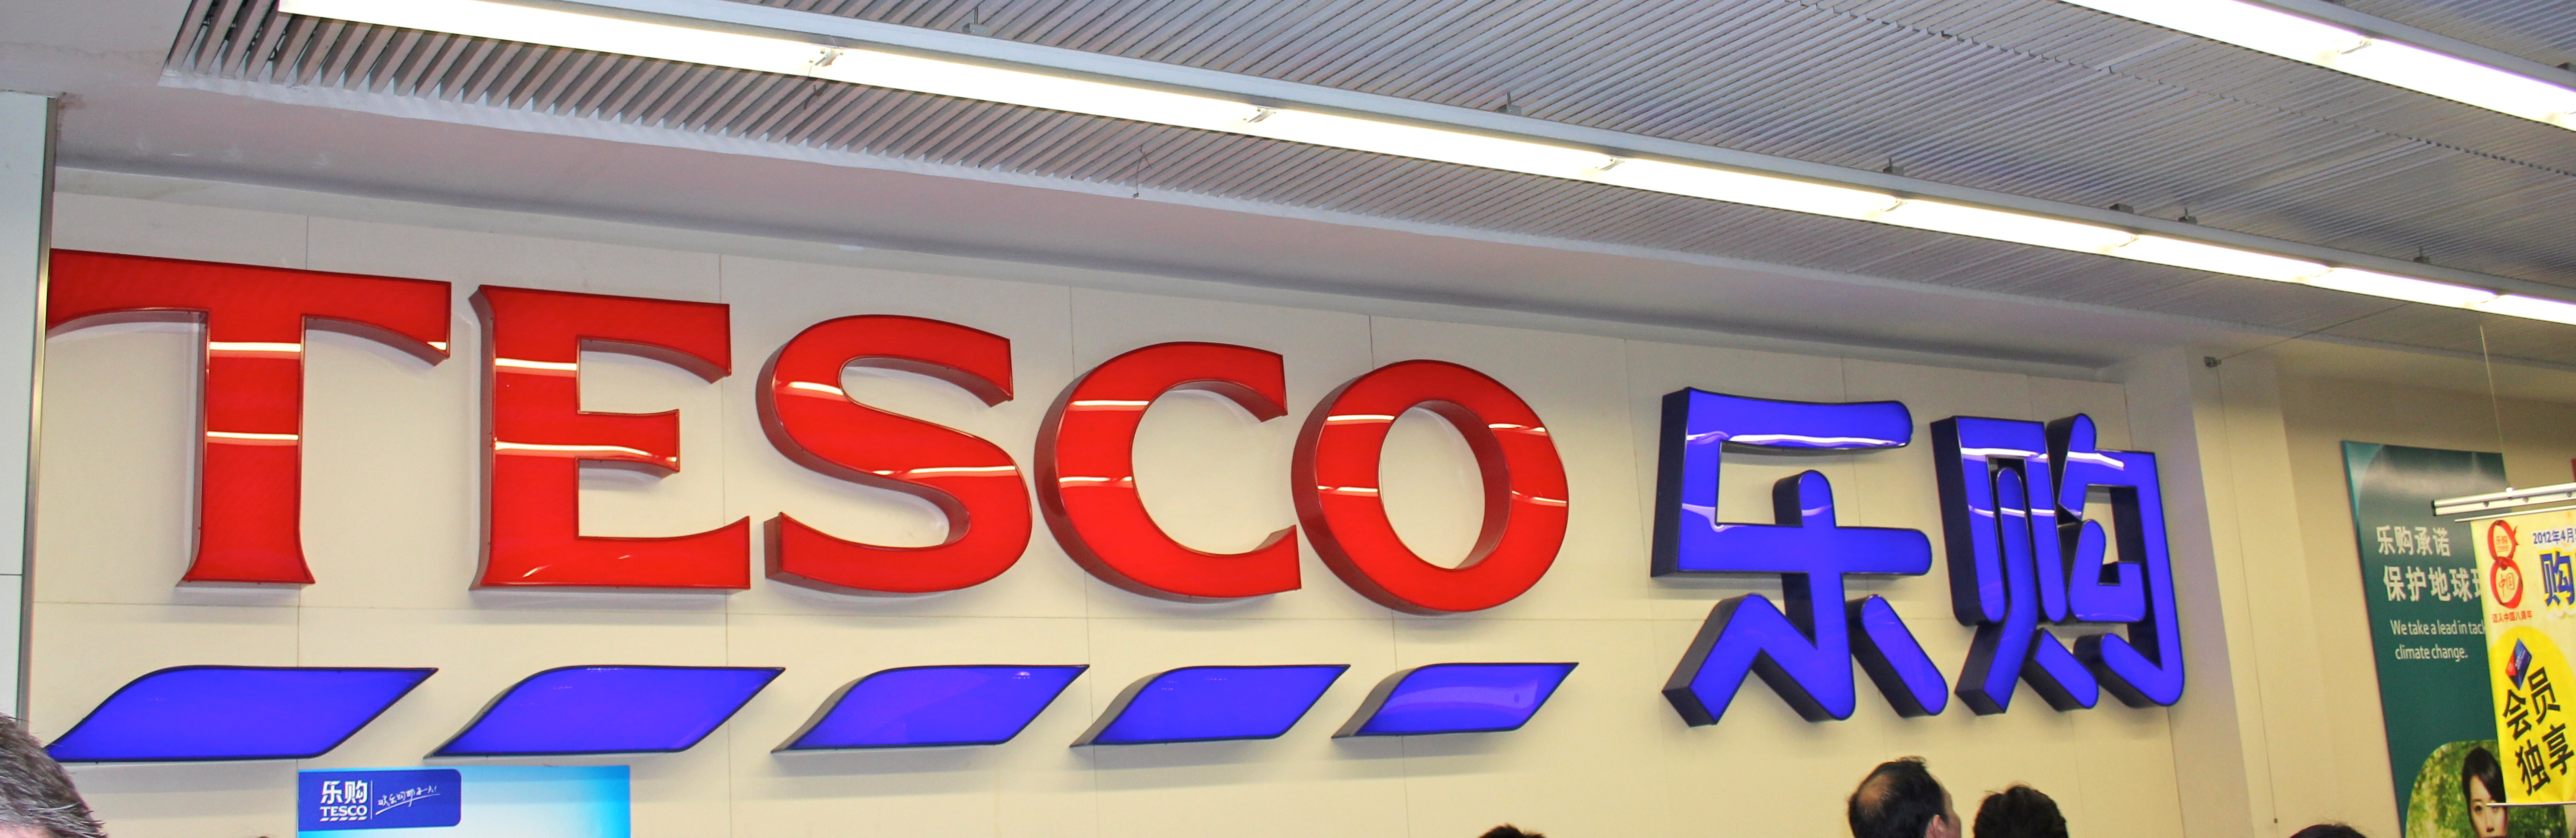 tesco entering to china Founded in 1919 as a market stall in the east end of london, tesco is now a  major uk-based retailer, employing more than 500000 people with operations in .